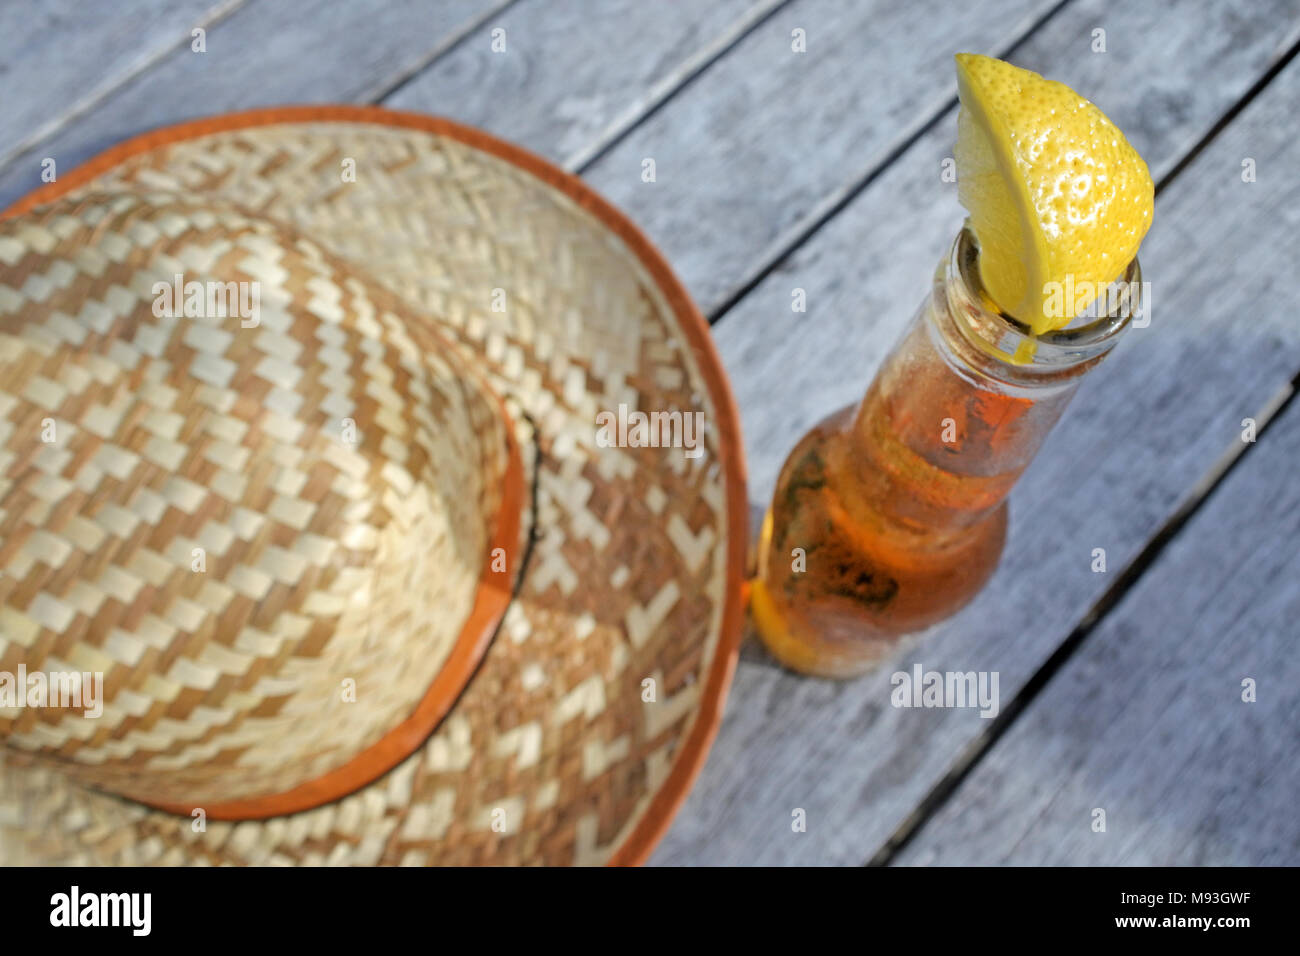 c1c4a00e42b Straw hat with fresh cold beer drink served on a table in a tropical resort.